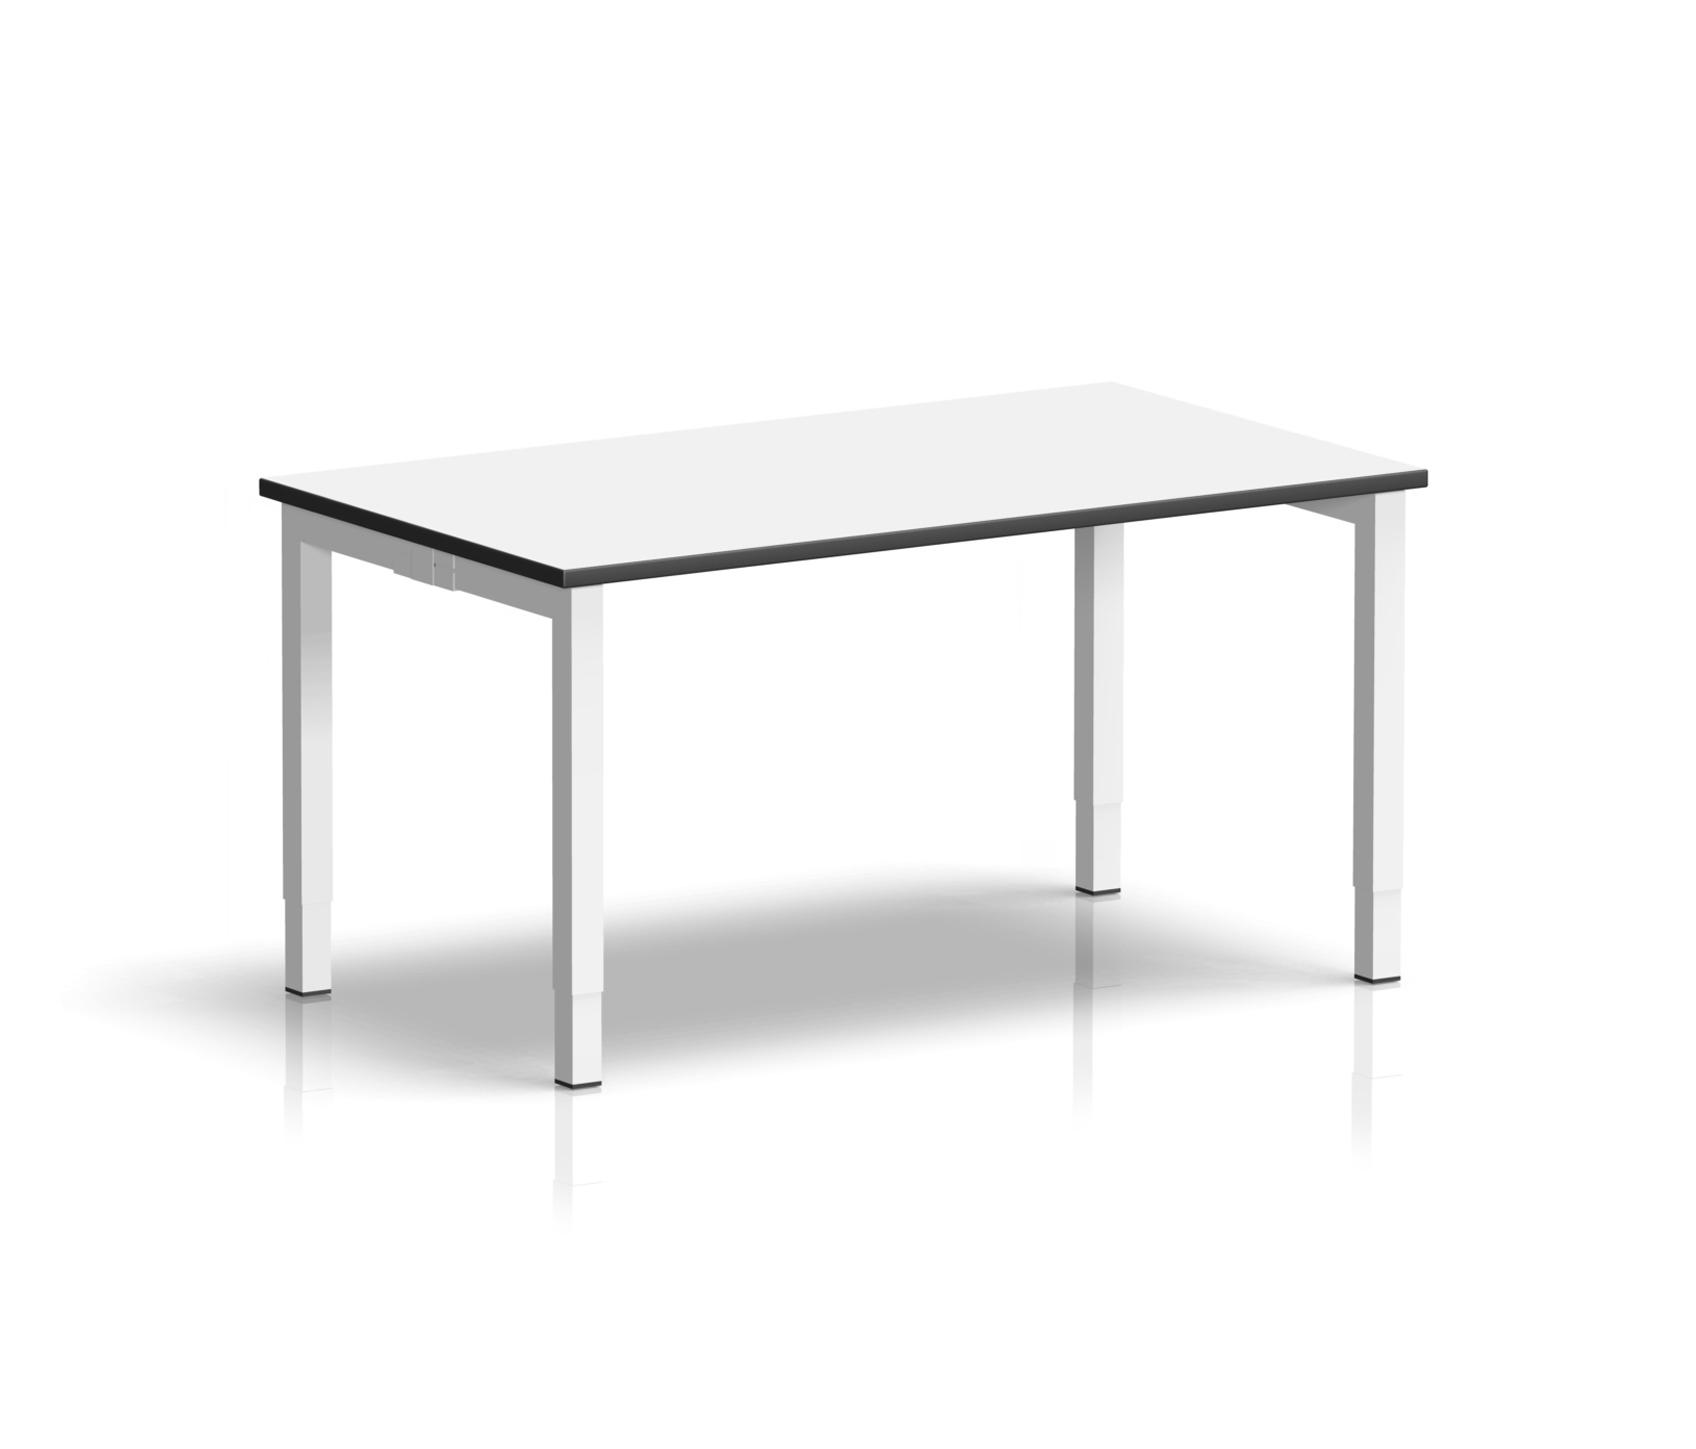 TRIASS DESK - Individual desks from Assmann Büromöbel | Architonic